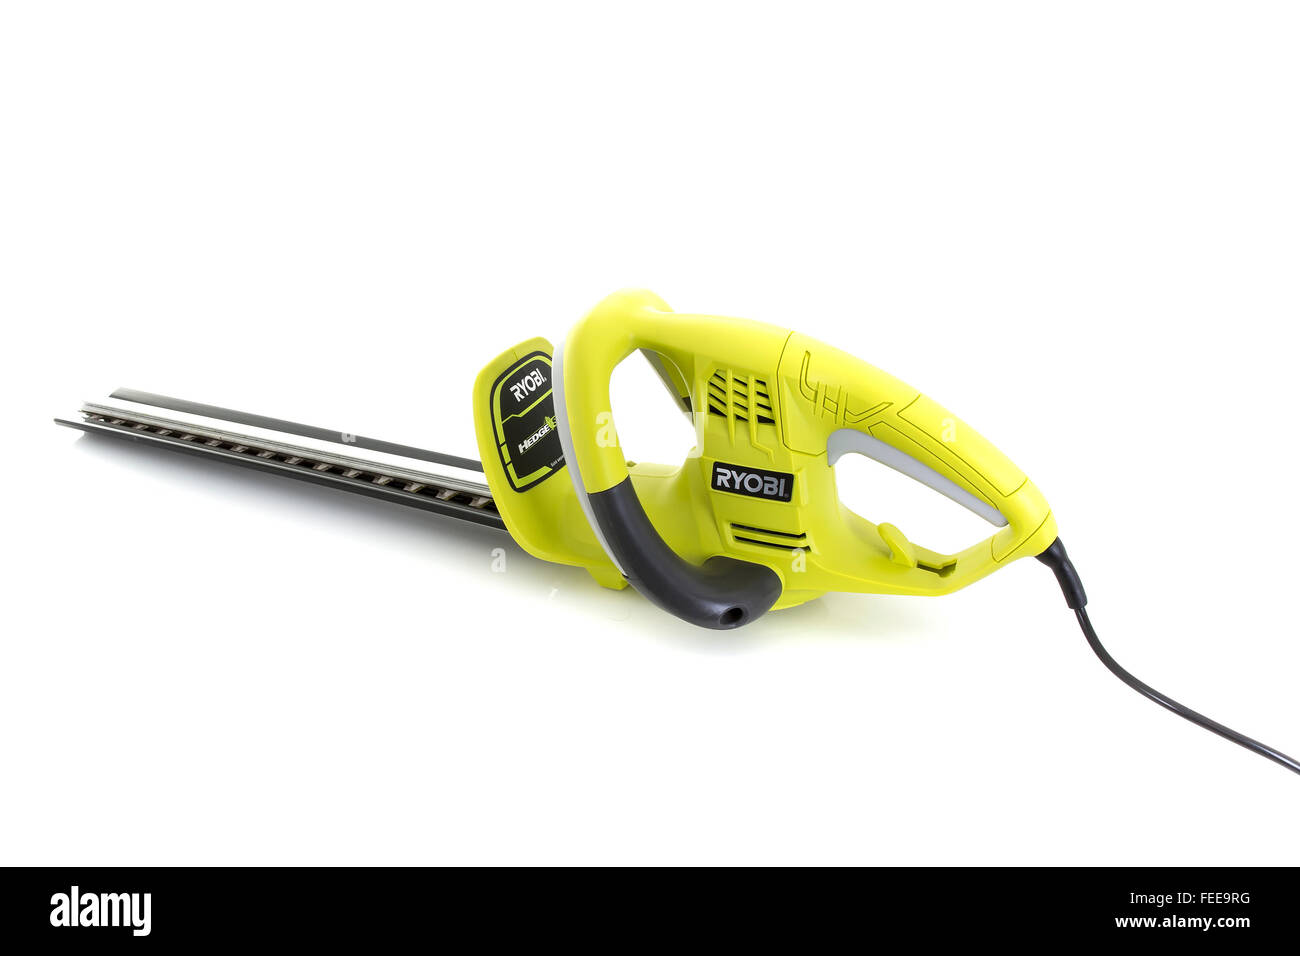 Hedge Trimmer Stock Photos & Hedge Trimmer Stock Images - Alamy